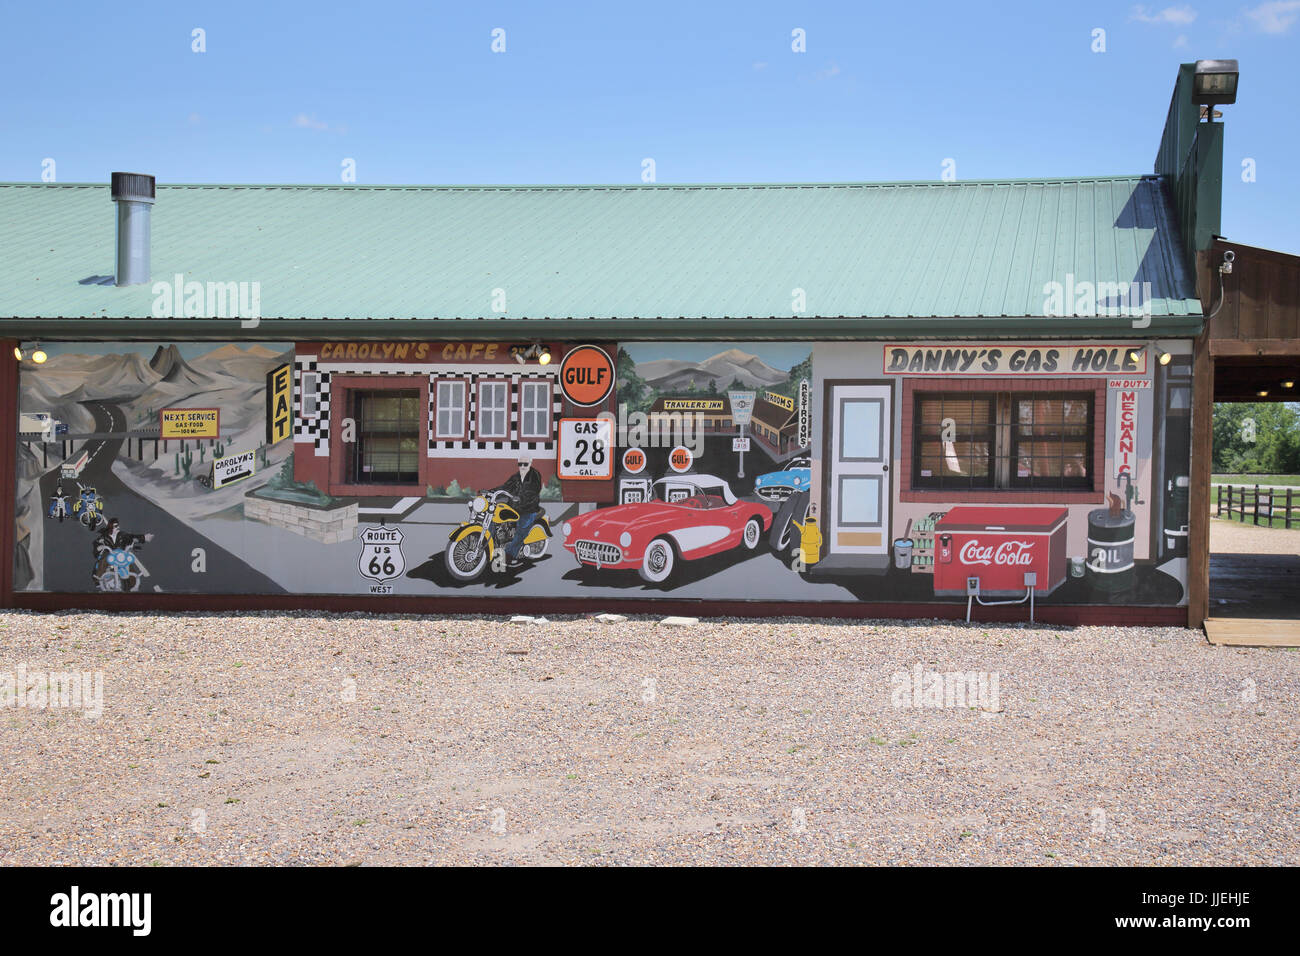 fanning outpost on route 66 missouri - Stock Image